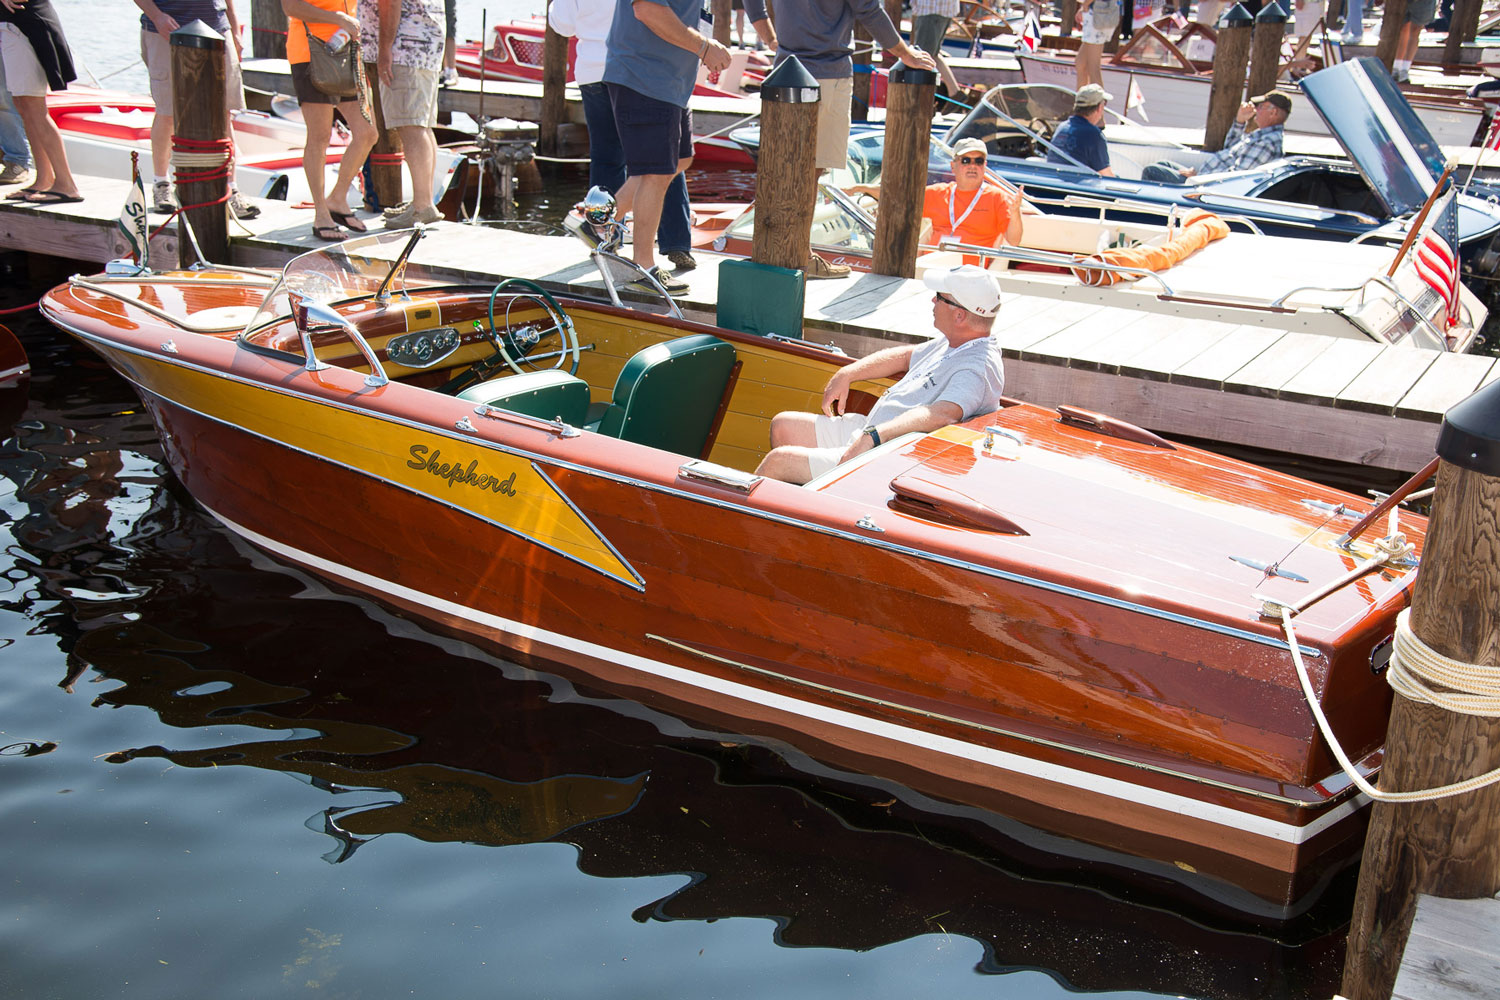 2015 Silver Classic Runabout Restored Acbs Antique